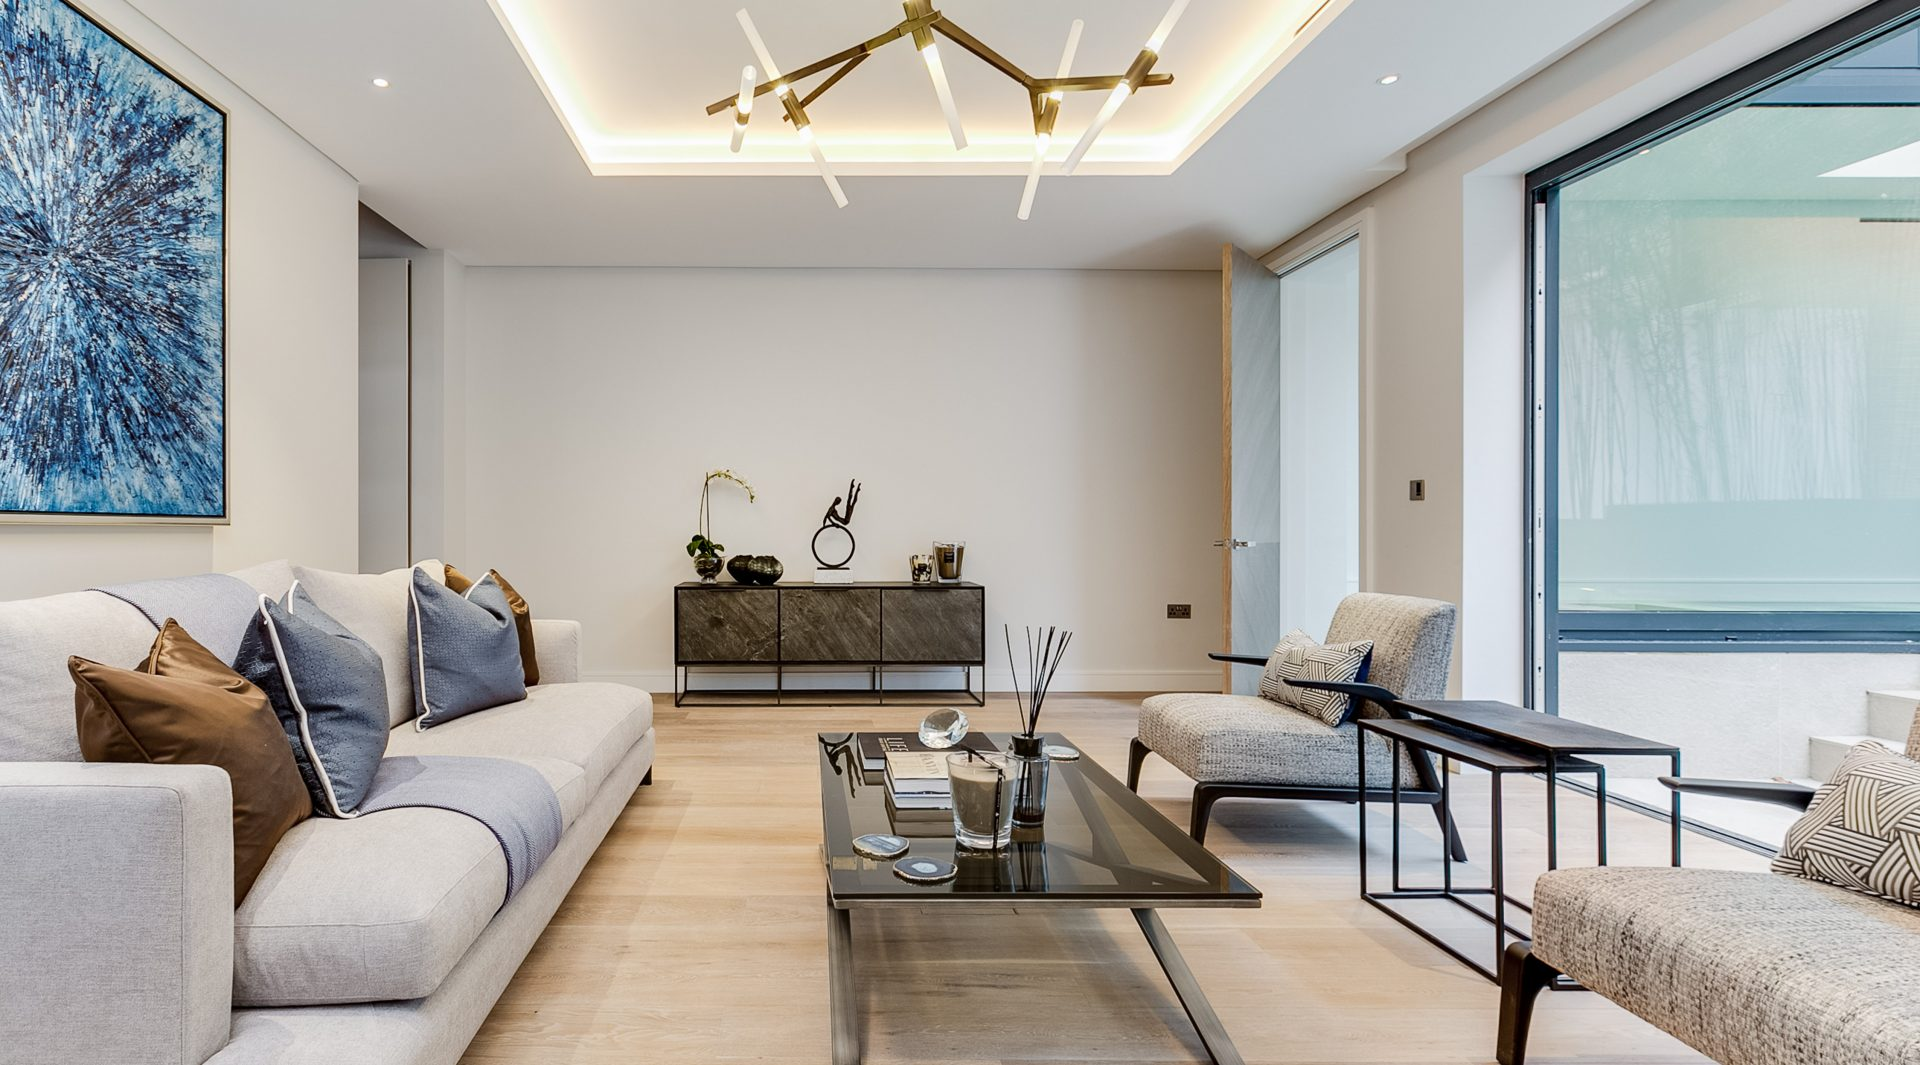 """A completely new built five-bedroom townhouse, which enjoys East to West facing light situated on just off Kensington High Street, a moments' walk from Holland Park, Kensington Gardens and Hyde Park. Onyx London were enlisted to complete the interior design of this luxury property in a way that would be harmonious with the affluence of the surrounding Kensington area. The townhouse is arranged over six floors and has been built to an extremely high standard offering luxurious accommodation over 6,600 sq. ft. The ground floor has a large entrance, which leads into the formal reception overlooking the garden, with a study area above on the first floor. The upper basement level comprises a huge open plan kitchen, dining and family area with a feature floating staircase leading up to the formal reception. Italian kitchen in a bespoke Bolivar Veneer, Bronze metallic and an island in Grey Marquina marble, fully fitted with Gaggenau appliances. Leading off the main staircase lobby, is a media room wired for a State-of-the-art Cinema system with bespoke walnut and acoustic panelled joinery designed for an 85"""" 4K screen and surround sound and is wired for Crestron system installation that can control through Crestron touchscreens and iPad minis. The smart home technology was designed and installed by SMC an award-winning system integrator. The lighting design was completed by London Lightworks and the cutting-edge lighting dimming system was from Lutron. The middle basement level hosts a large swimming pool with an entertainment area, jacuzzi, steam room, spa change and gym. The master suite is on the first floor with a walk-in wardrobe in a bespoke Bolivar veneer and fabric panelled joinery, with his and hers drawer units, hanging rails and a dressing table. The master en suite boasts a large shower, bath and double vanity basin, in a beautifully golden veined Sivec Marble. The second and third floor comprises four further guest bedrooms, with bespoke wardrobes and well-des"""